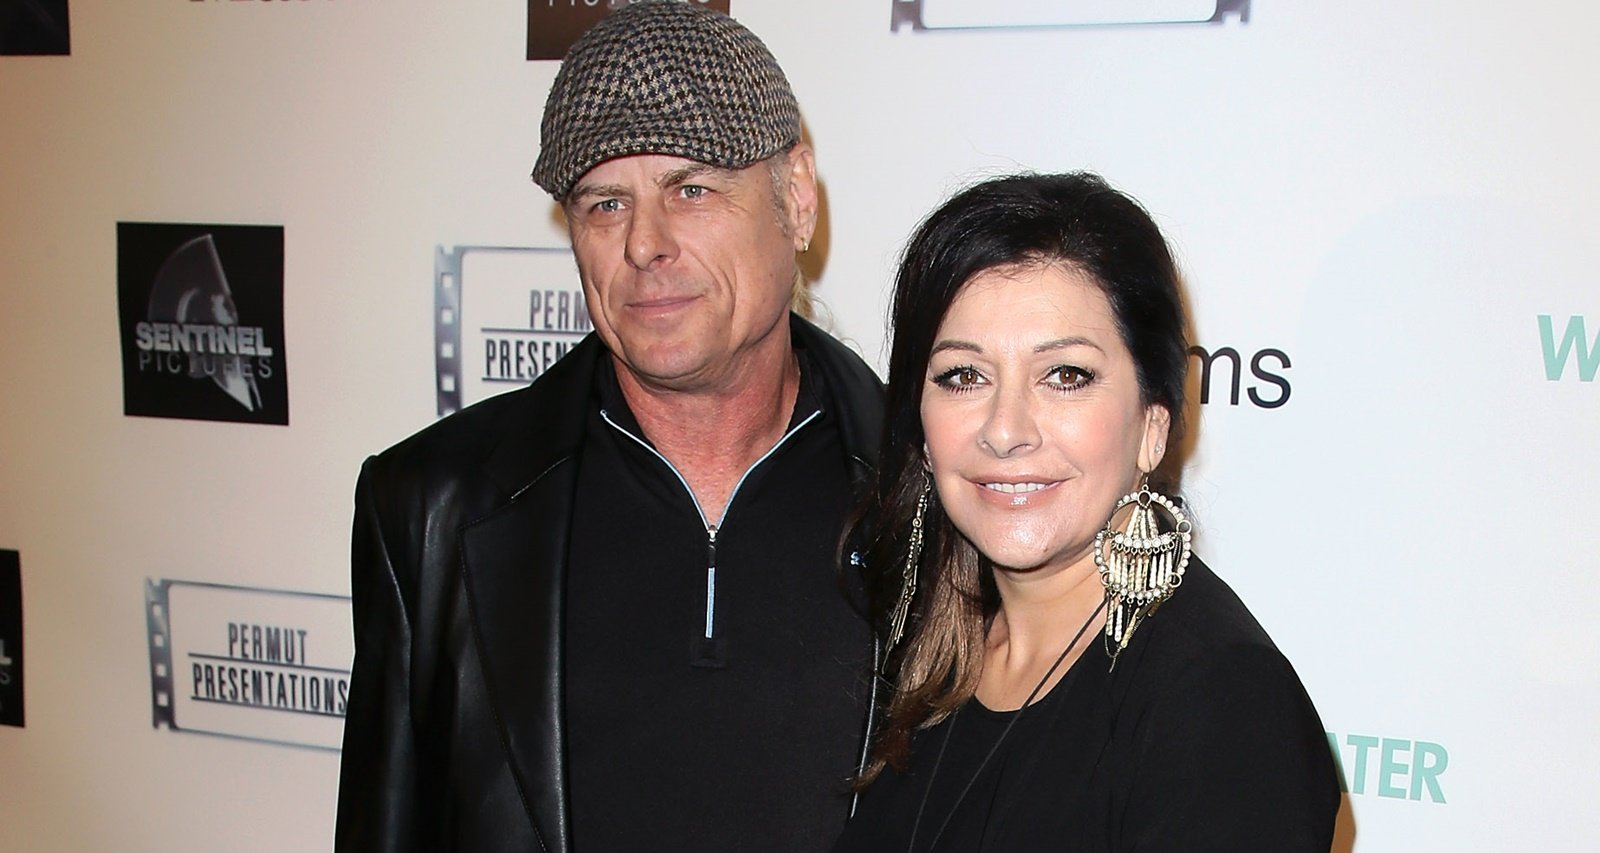 Marina Sirtis' Musician Husband, Michael Lamper Wiki, Band, Early Life and Facts To Know